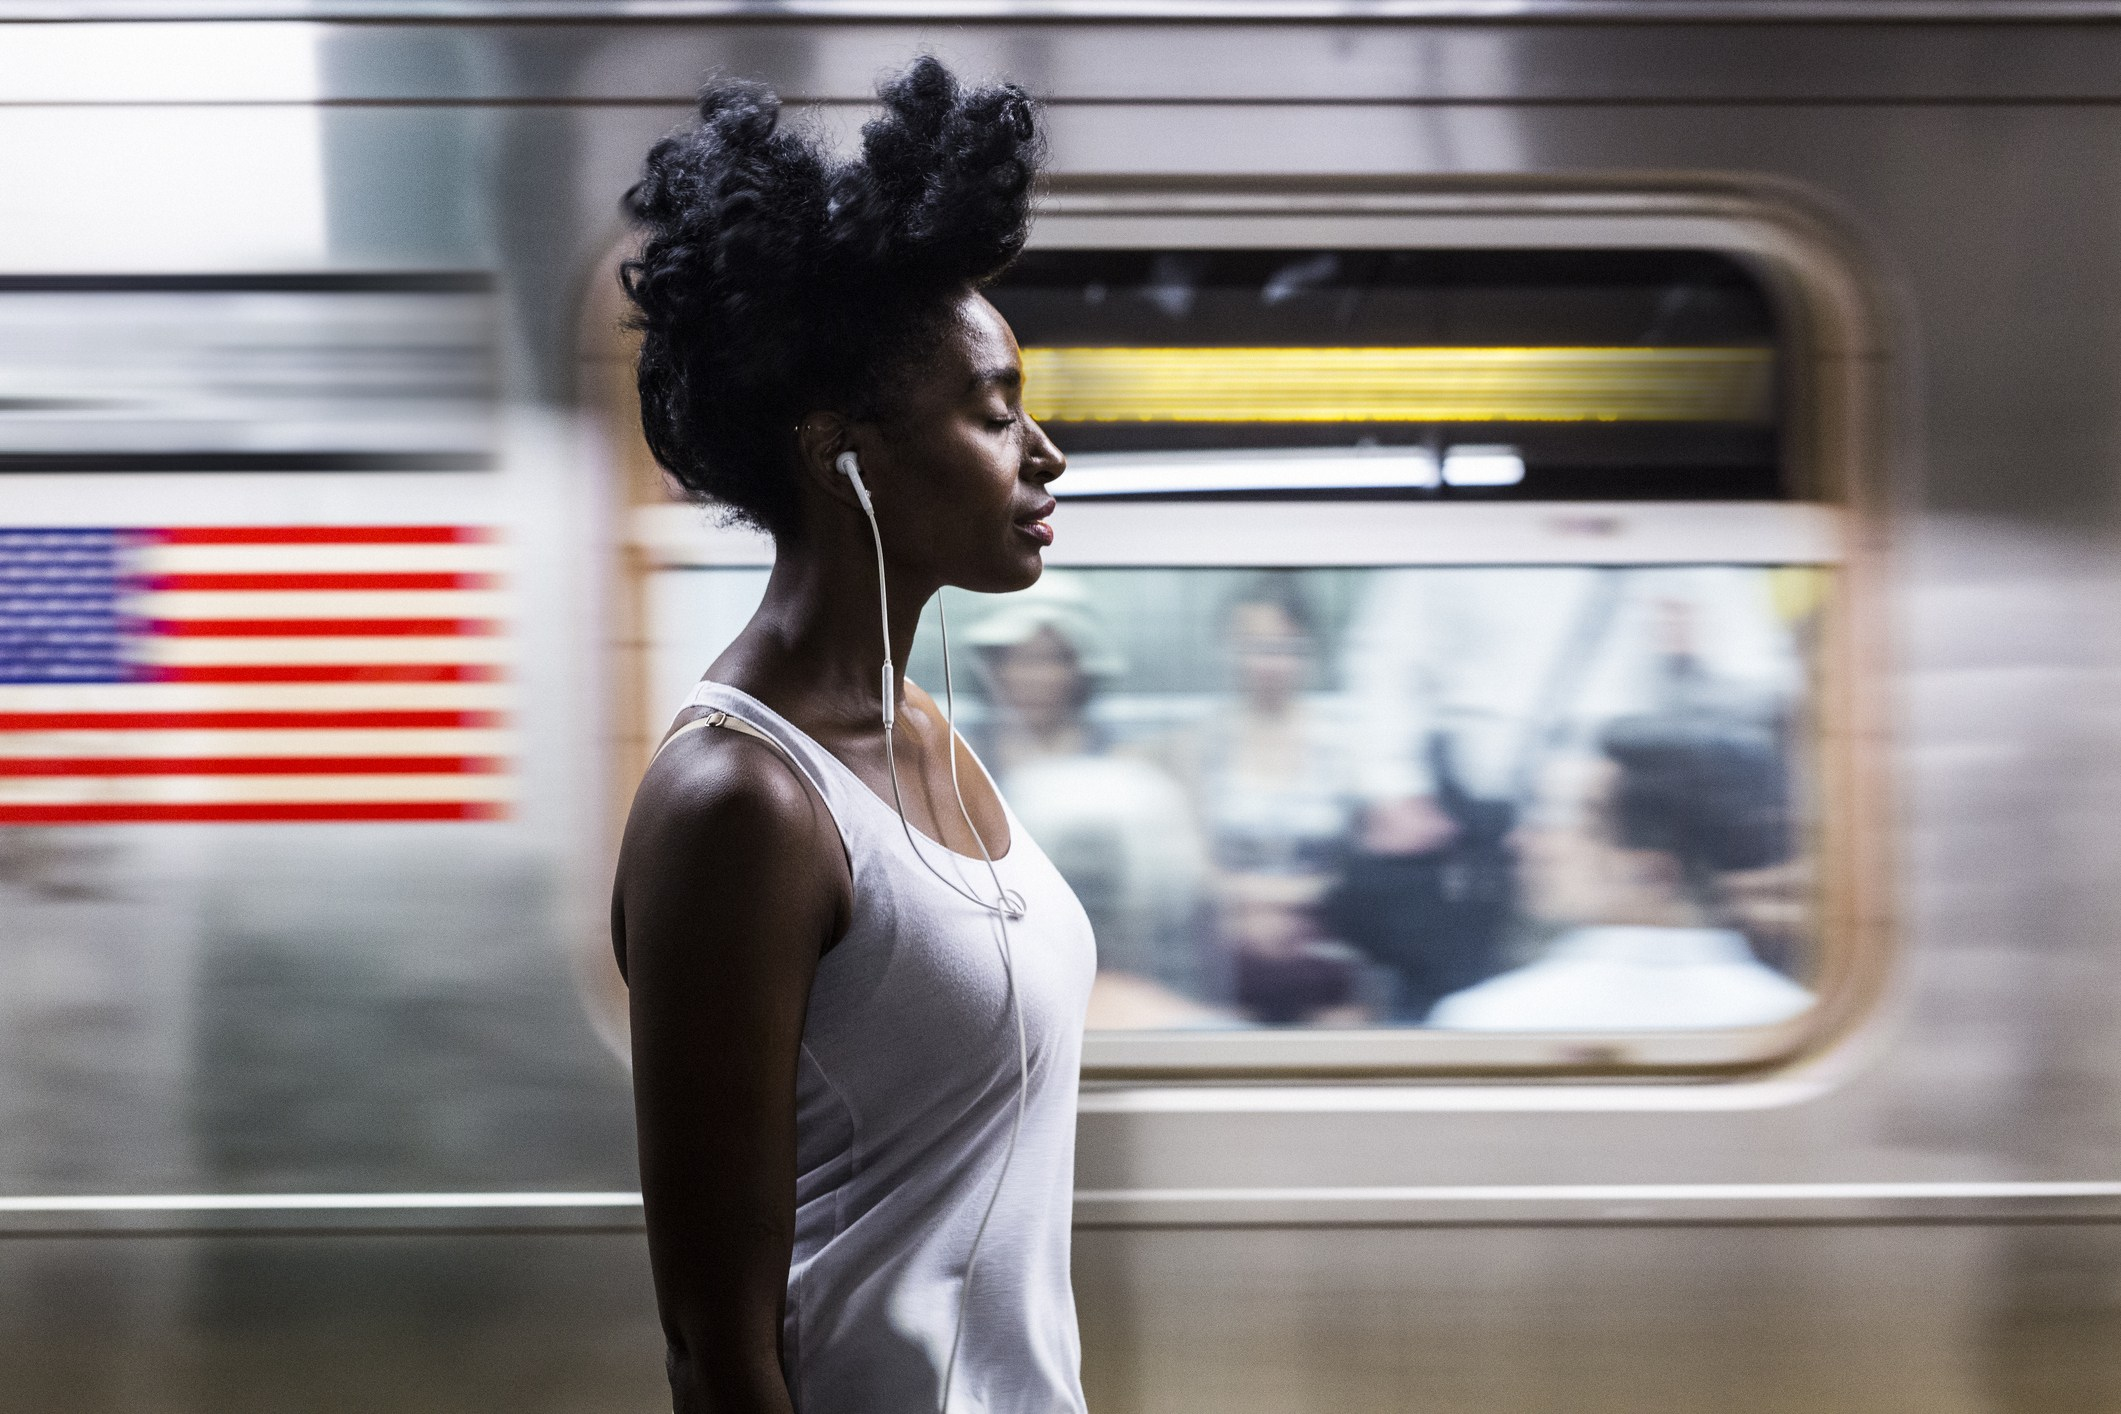 5 Tips for Surviving Your Commute